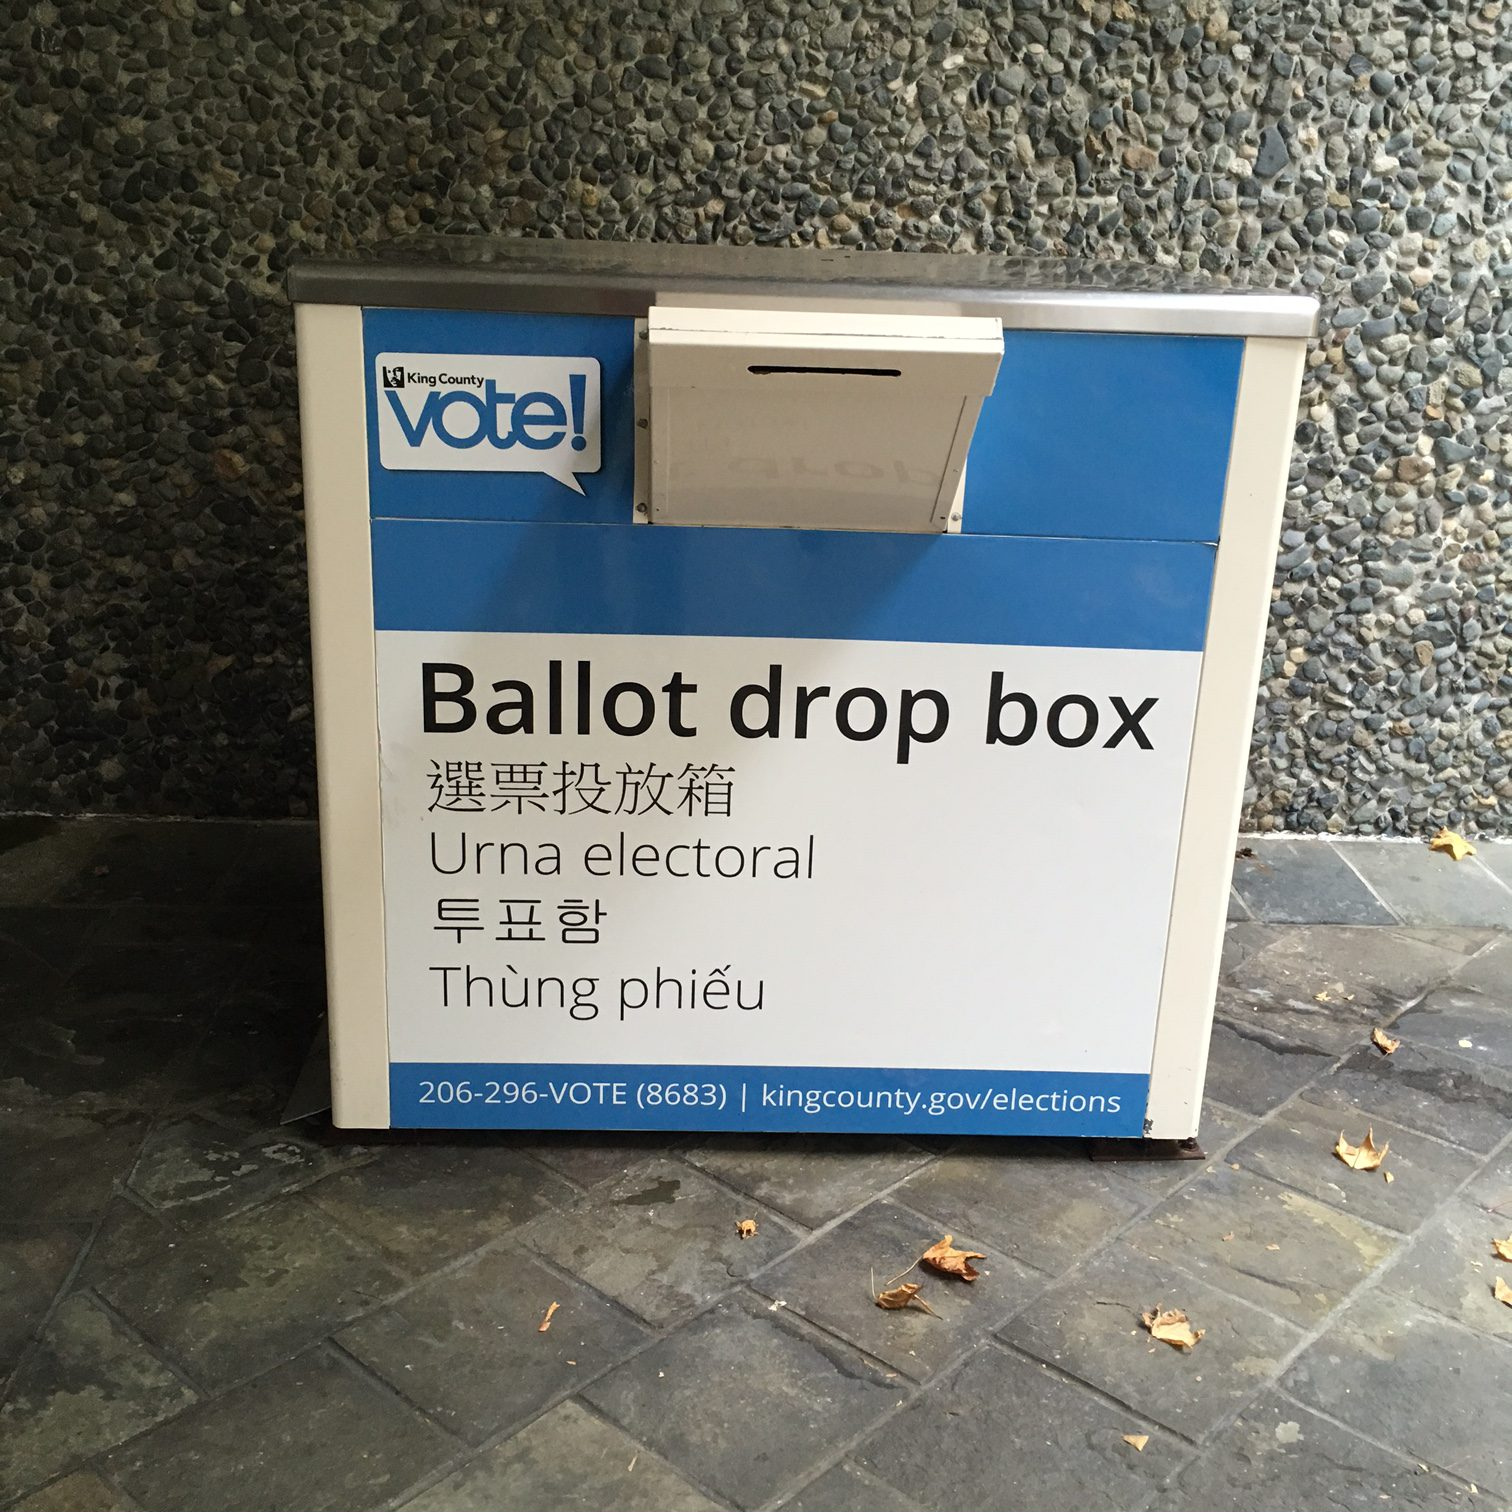 Blue and white box with slit for ballots on a sidewalk.